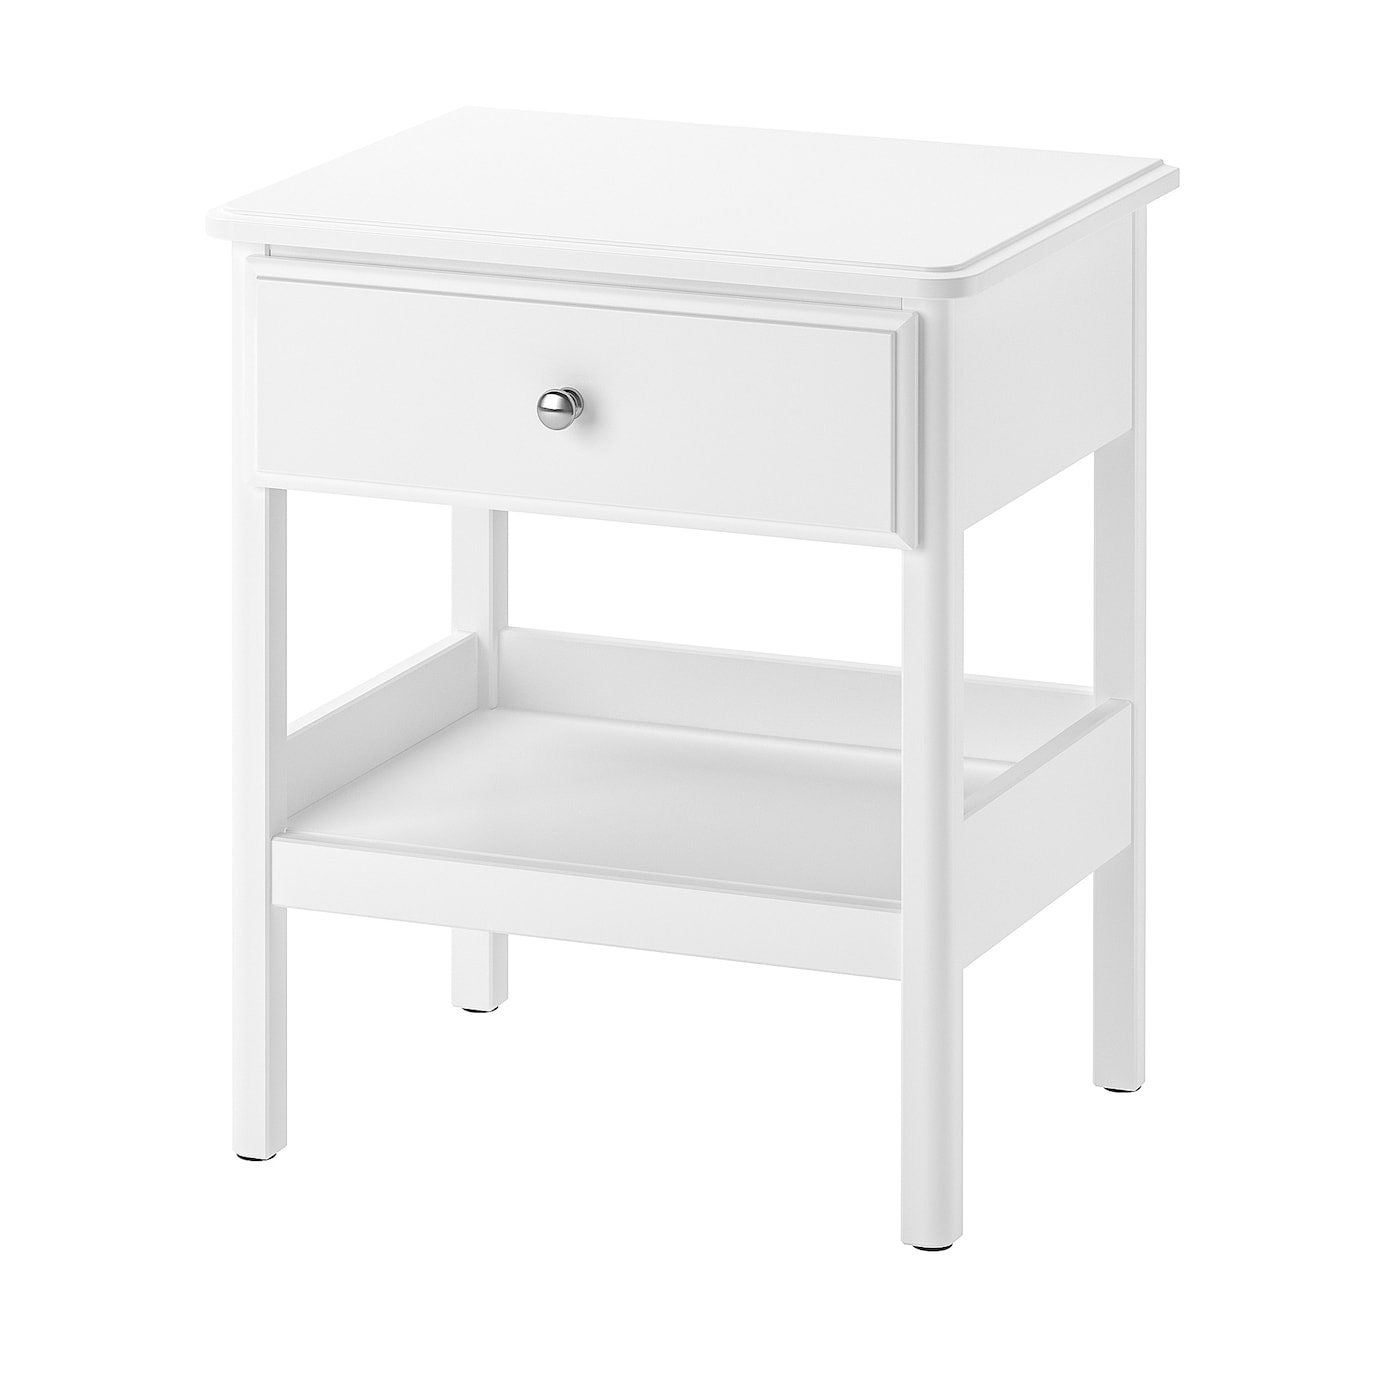 dal-bedside-table-white__0624430_PE691837_S5